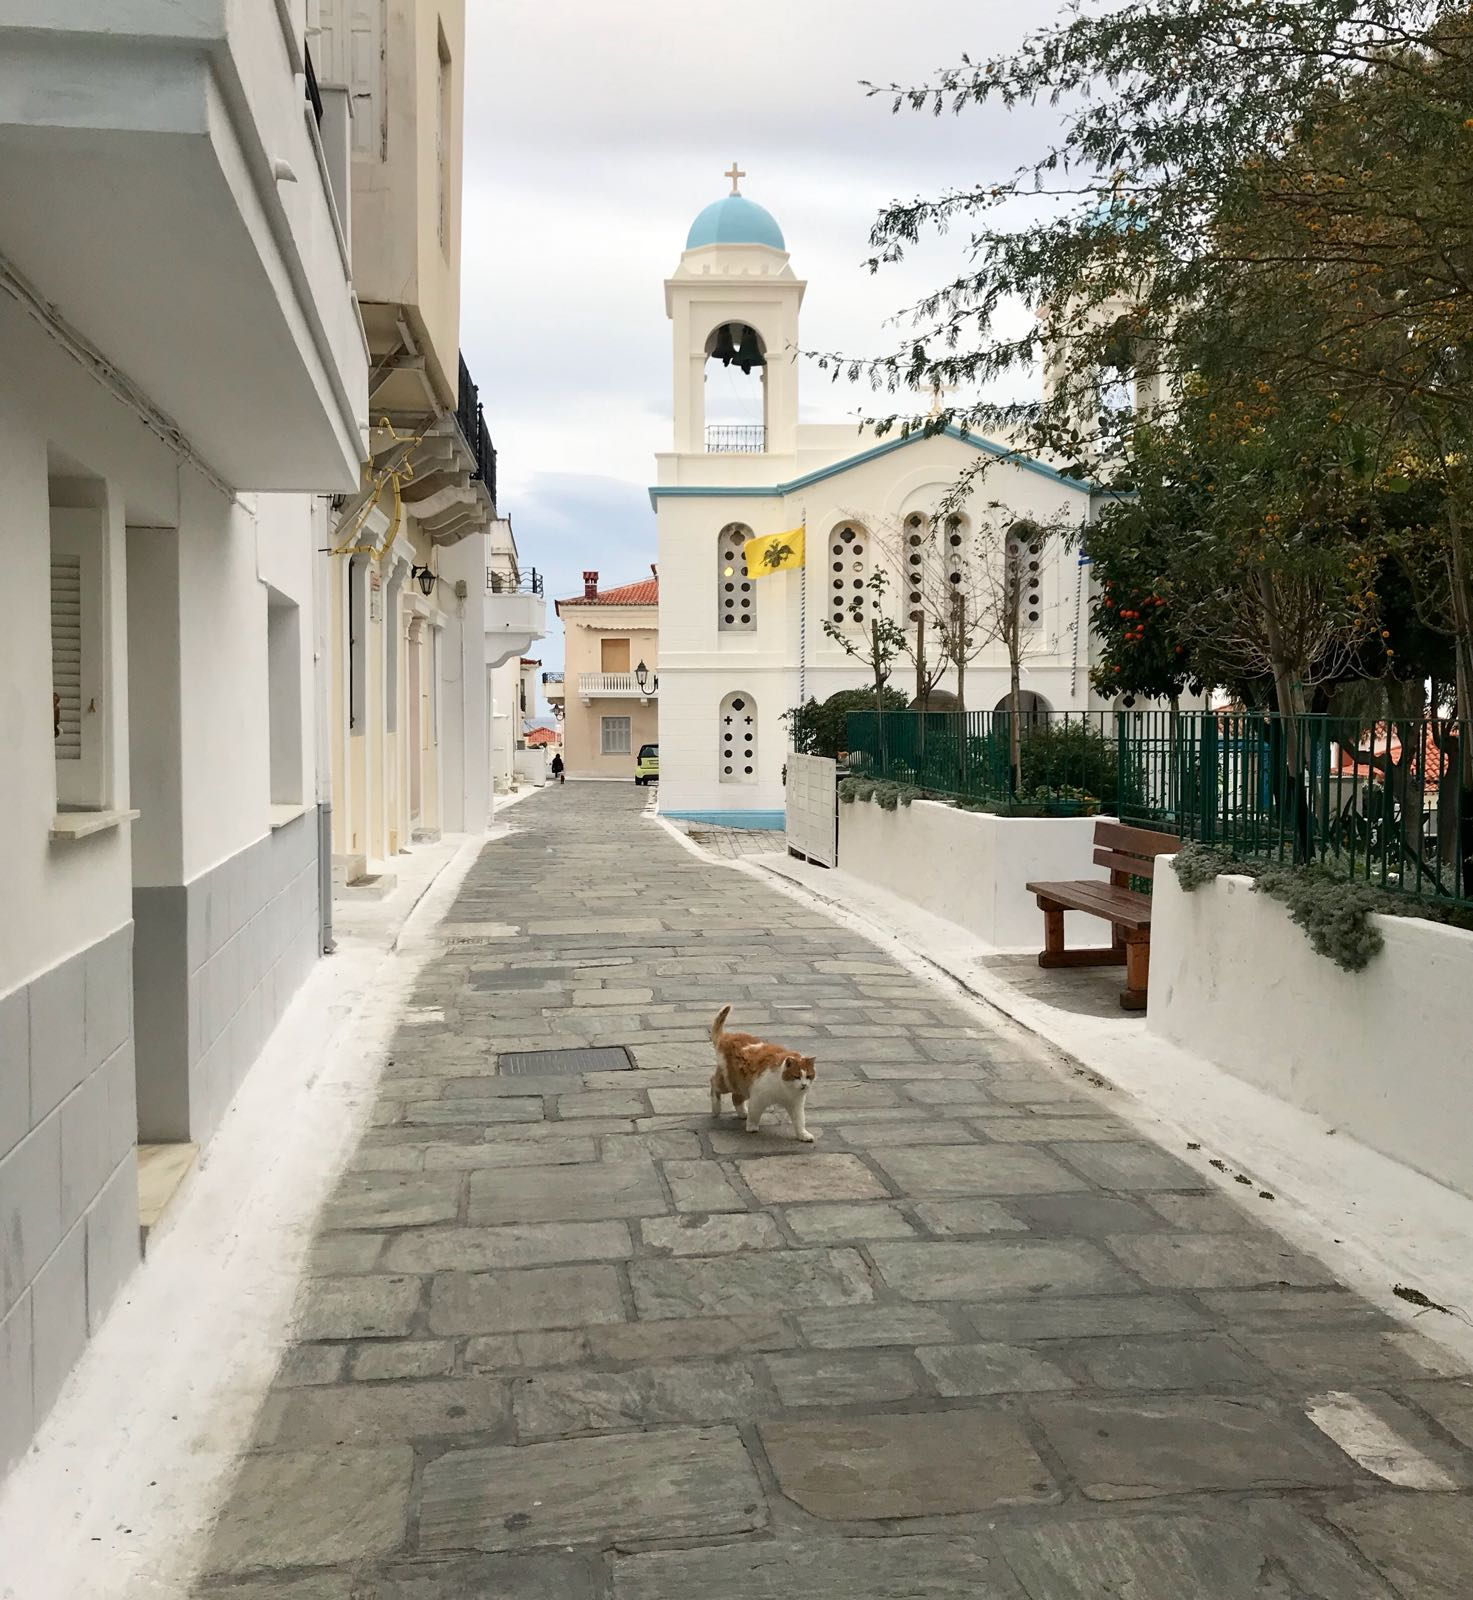 Path leading to a church in Chora with a ginger cat in shot